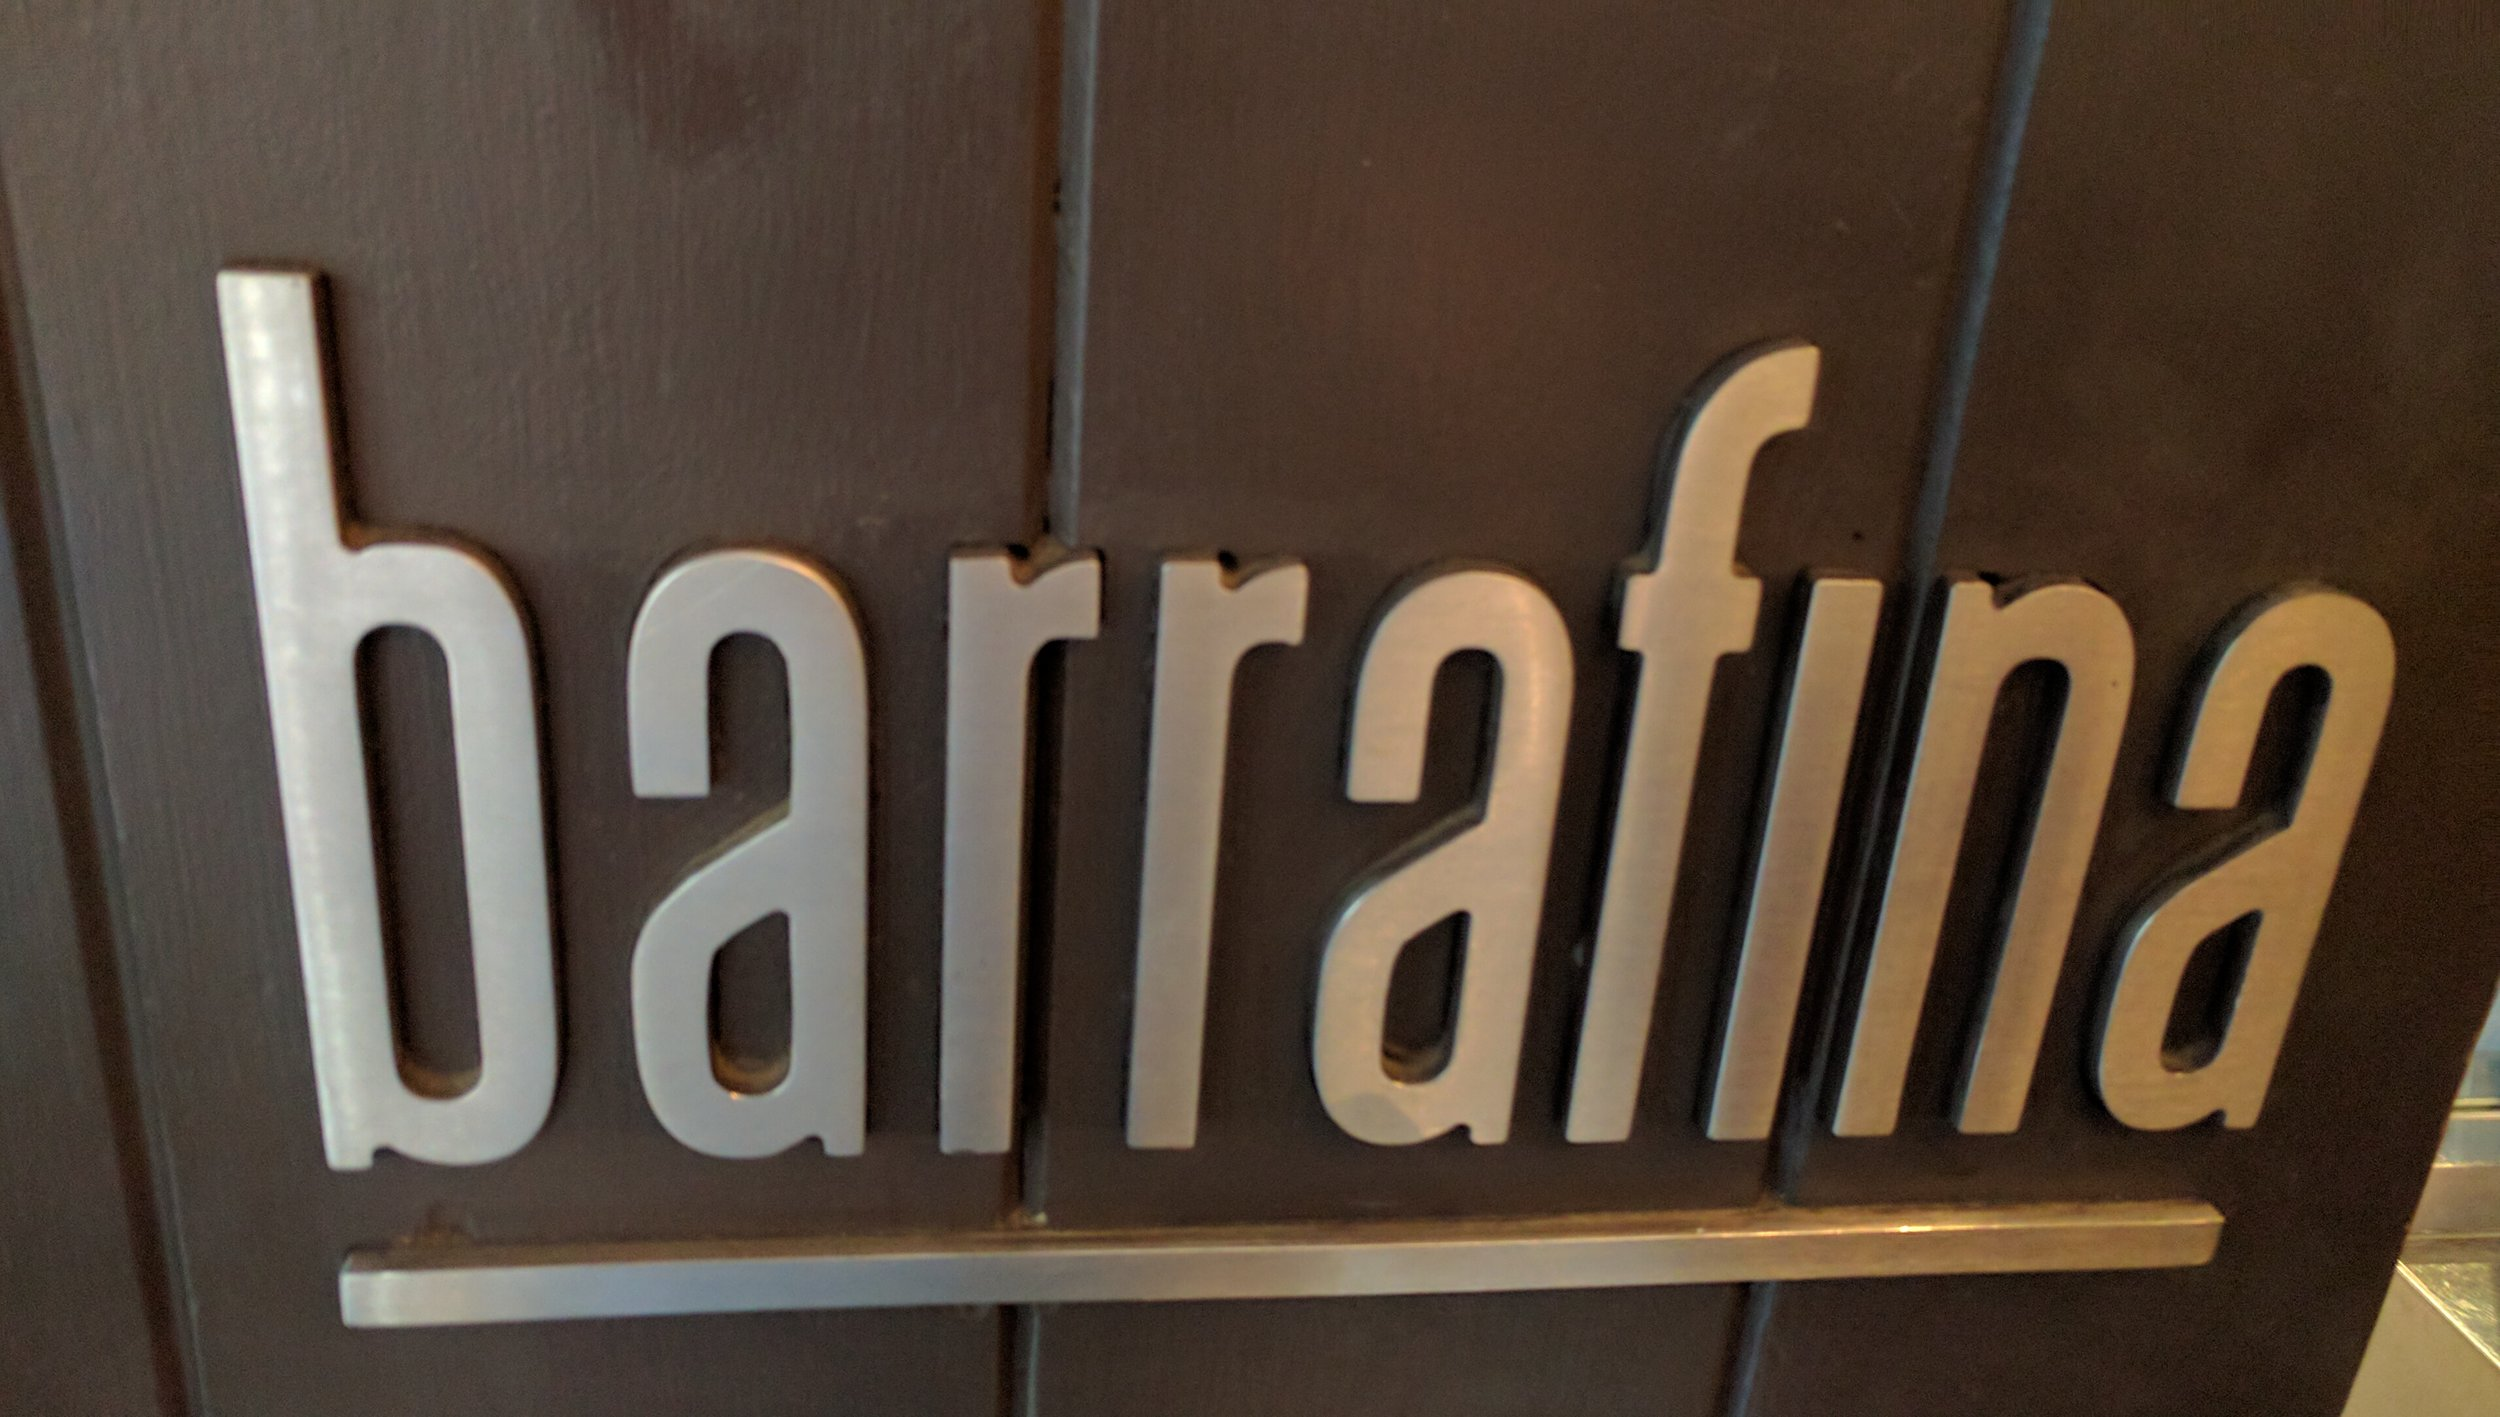 The only sign that you are at Barrafina is a small name on the front door.